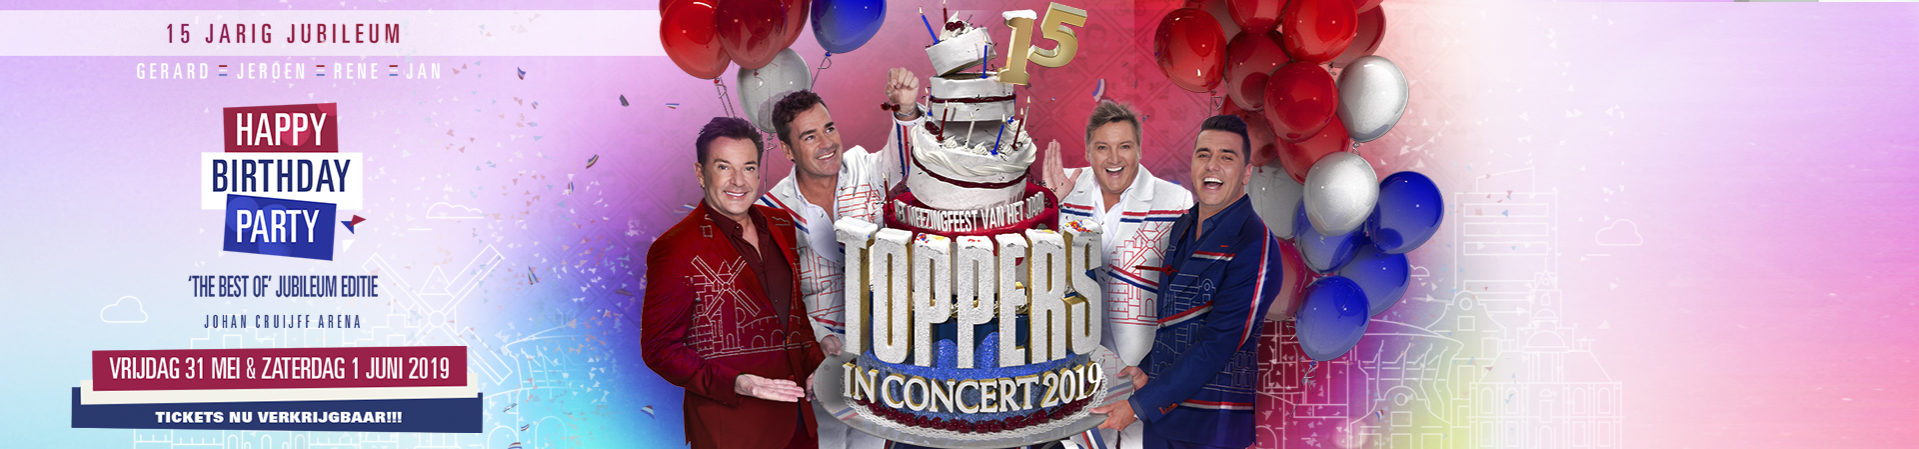 Toppers in Concert 2019 1920x450